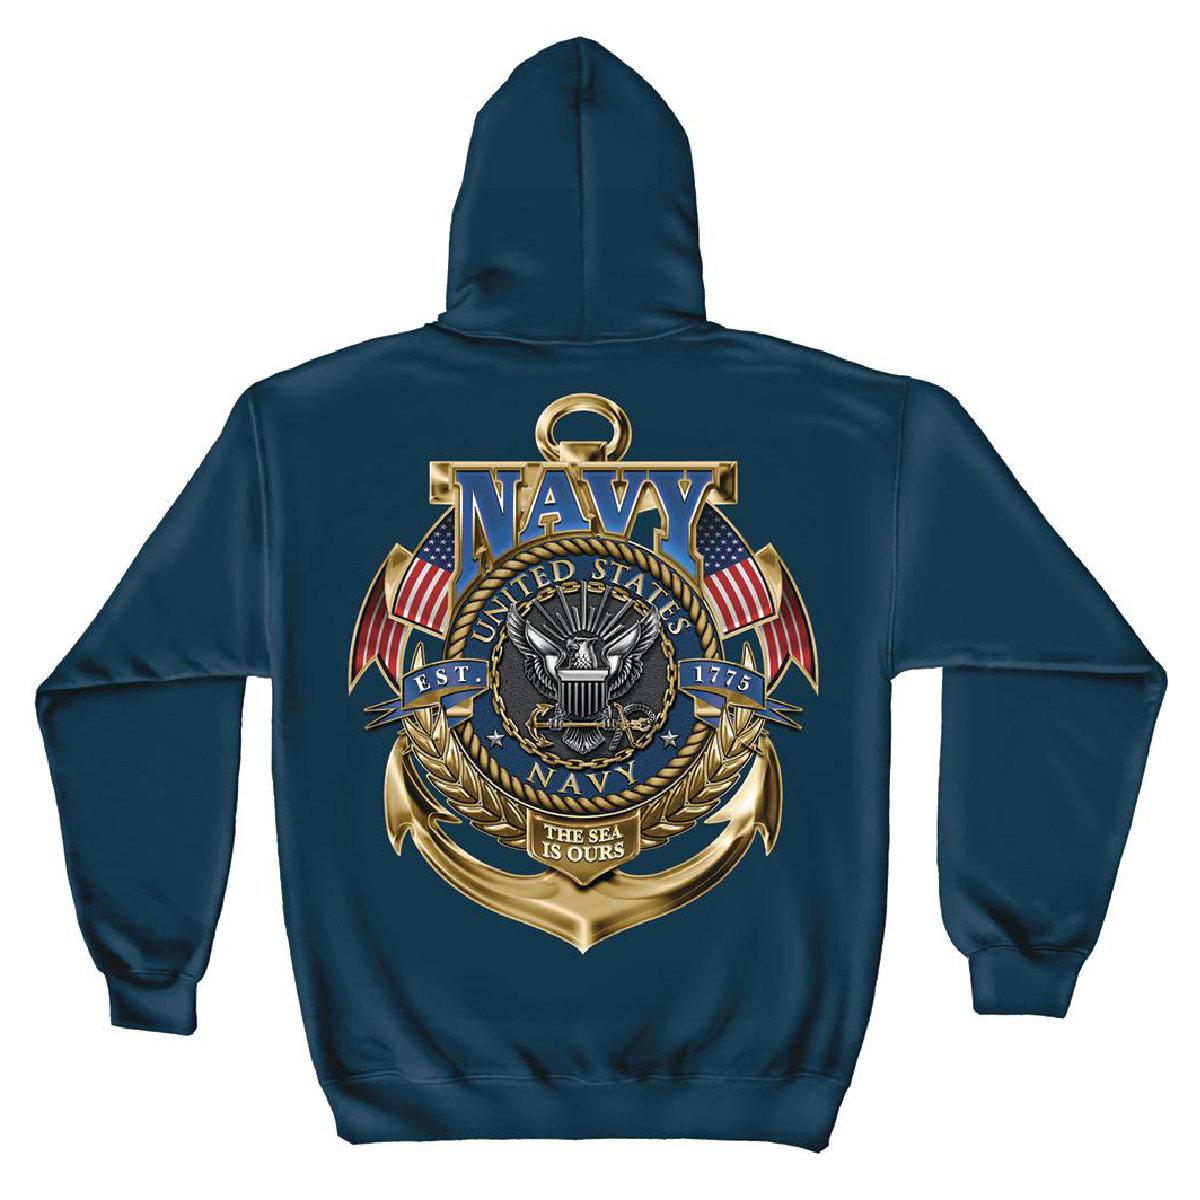 U.S. Navy The Sea Is Ours Hooded Sweatshirt by Erazor Bits, Navy Blue